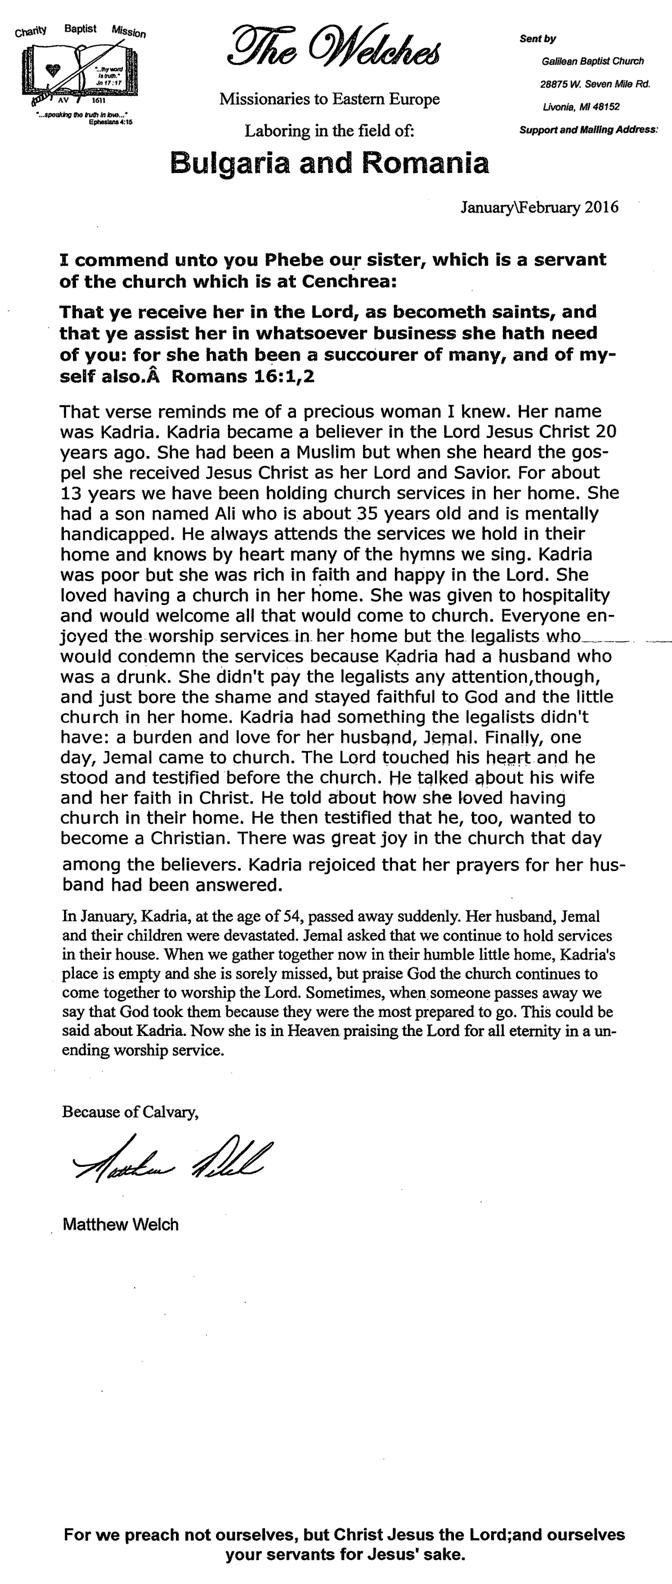 Welch_2-16_Prayer_Letter